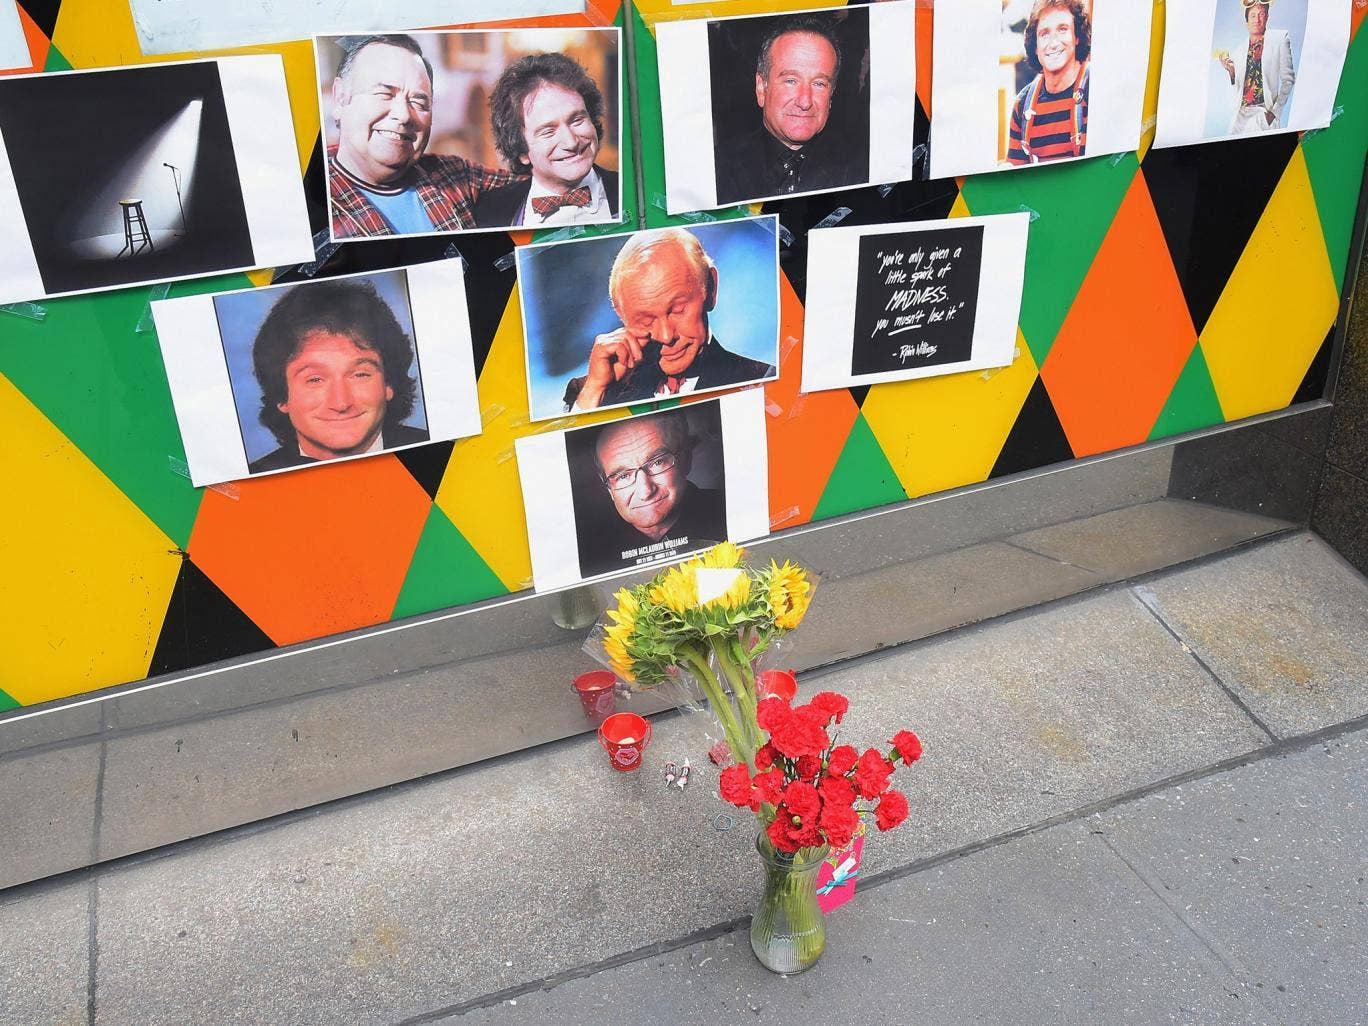 Flowers, tootsie rolls, a card, and a candle are placed in memory of Robin Williams in front of Carolines on Broadway comedy club in New York City